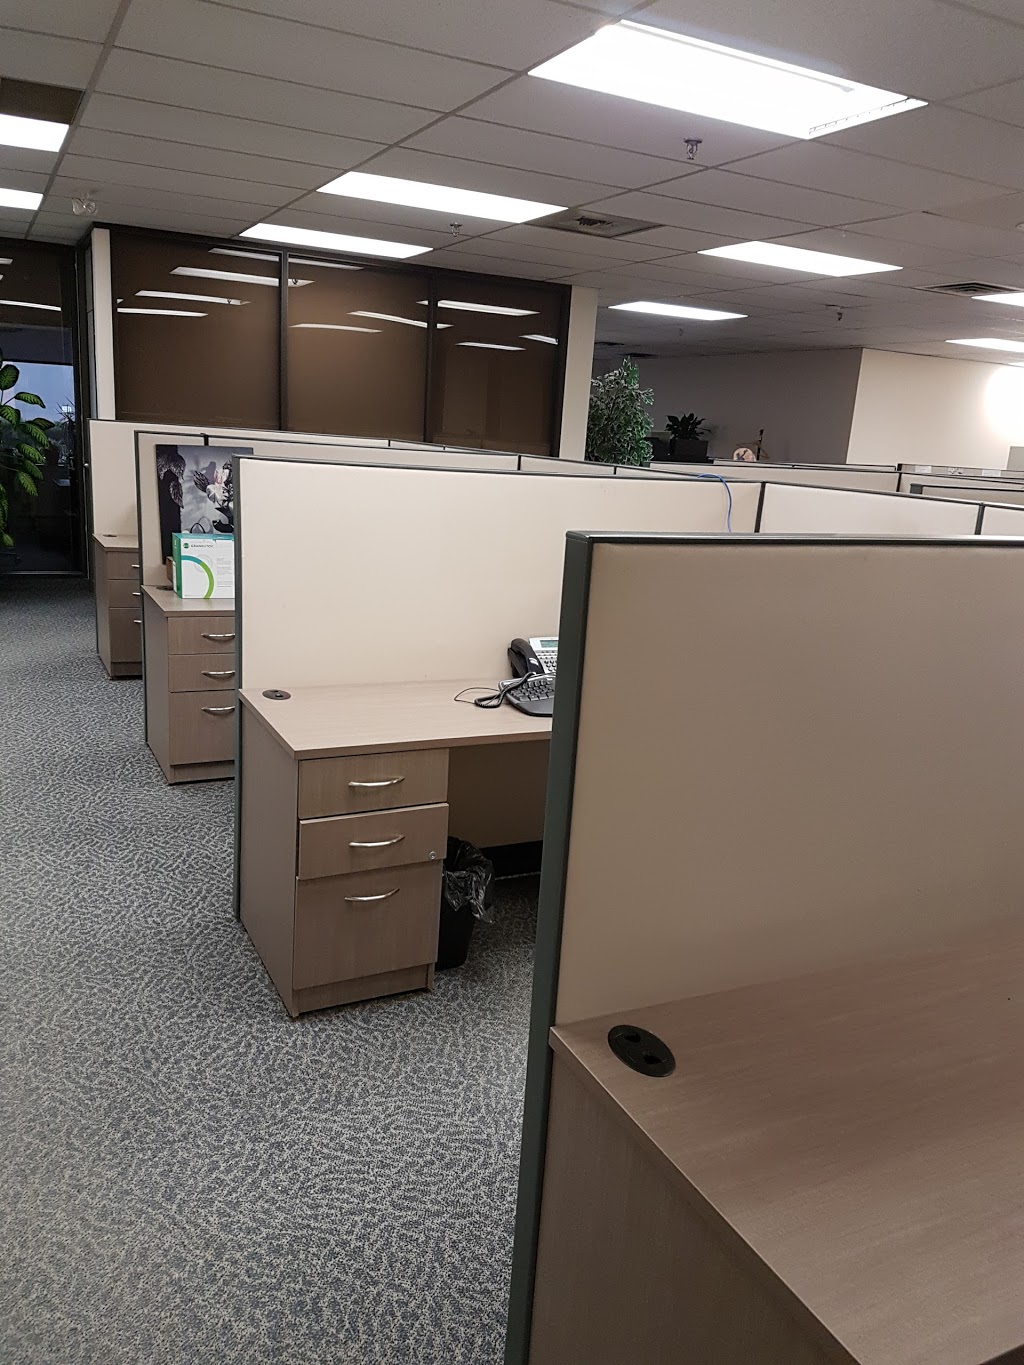 Anixter Canada | point of interest | 3688 Nashua Dr, Mississauga, ON L4V 1M5, Canada | 9056778997 OR +1 905-677-8997